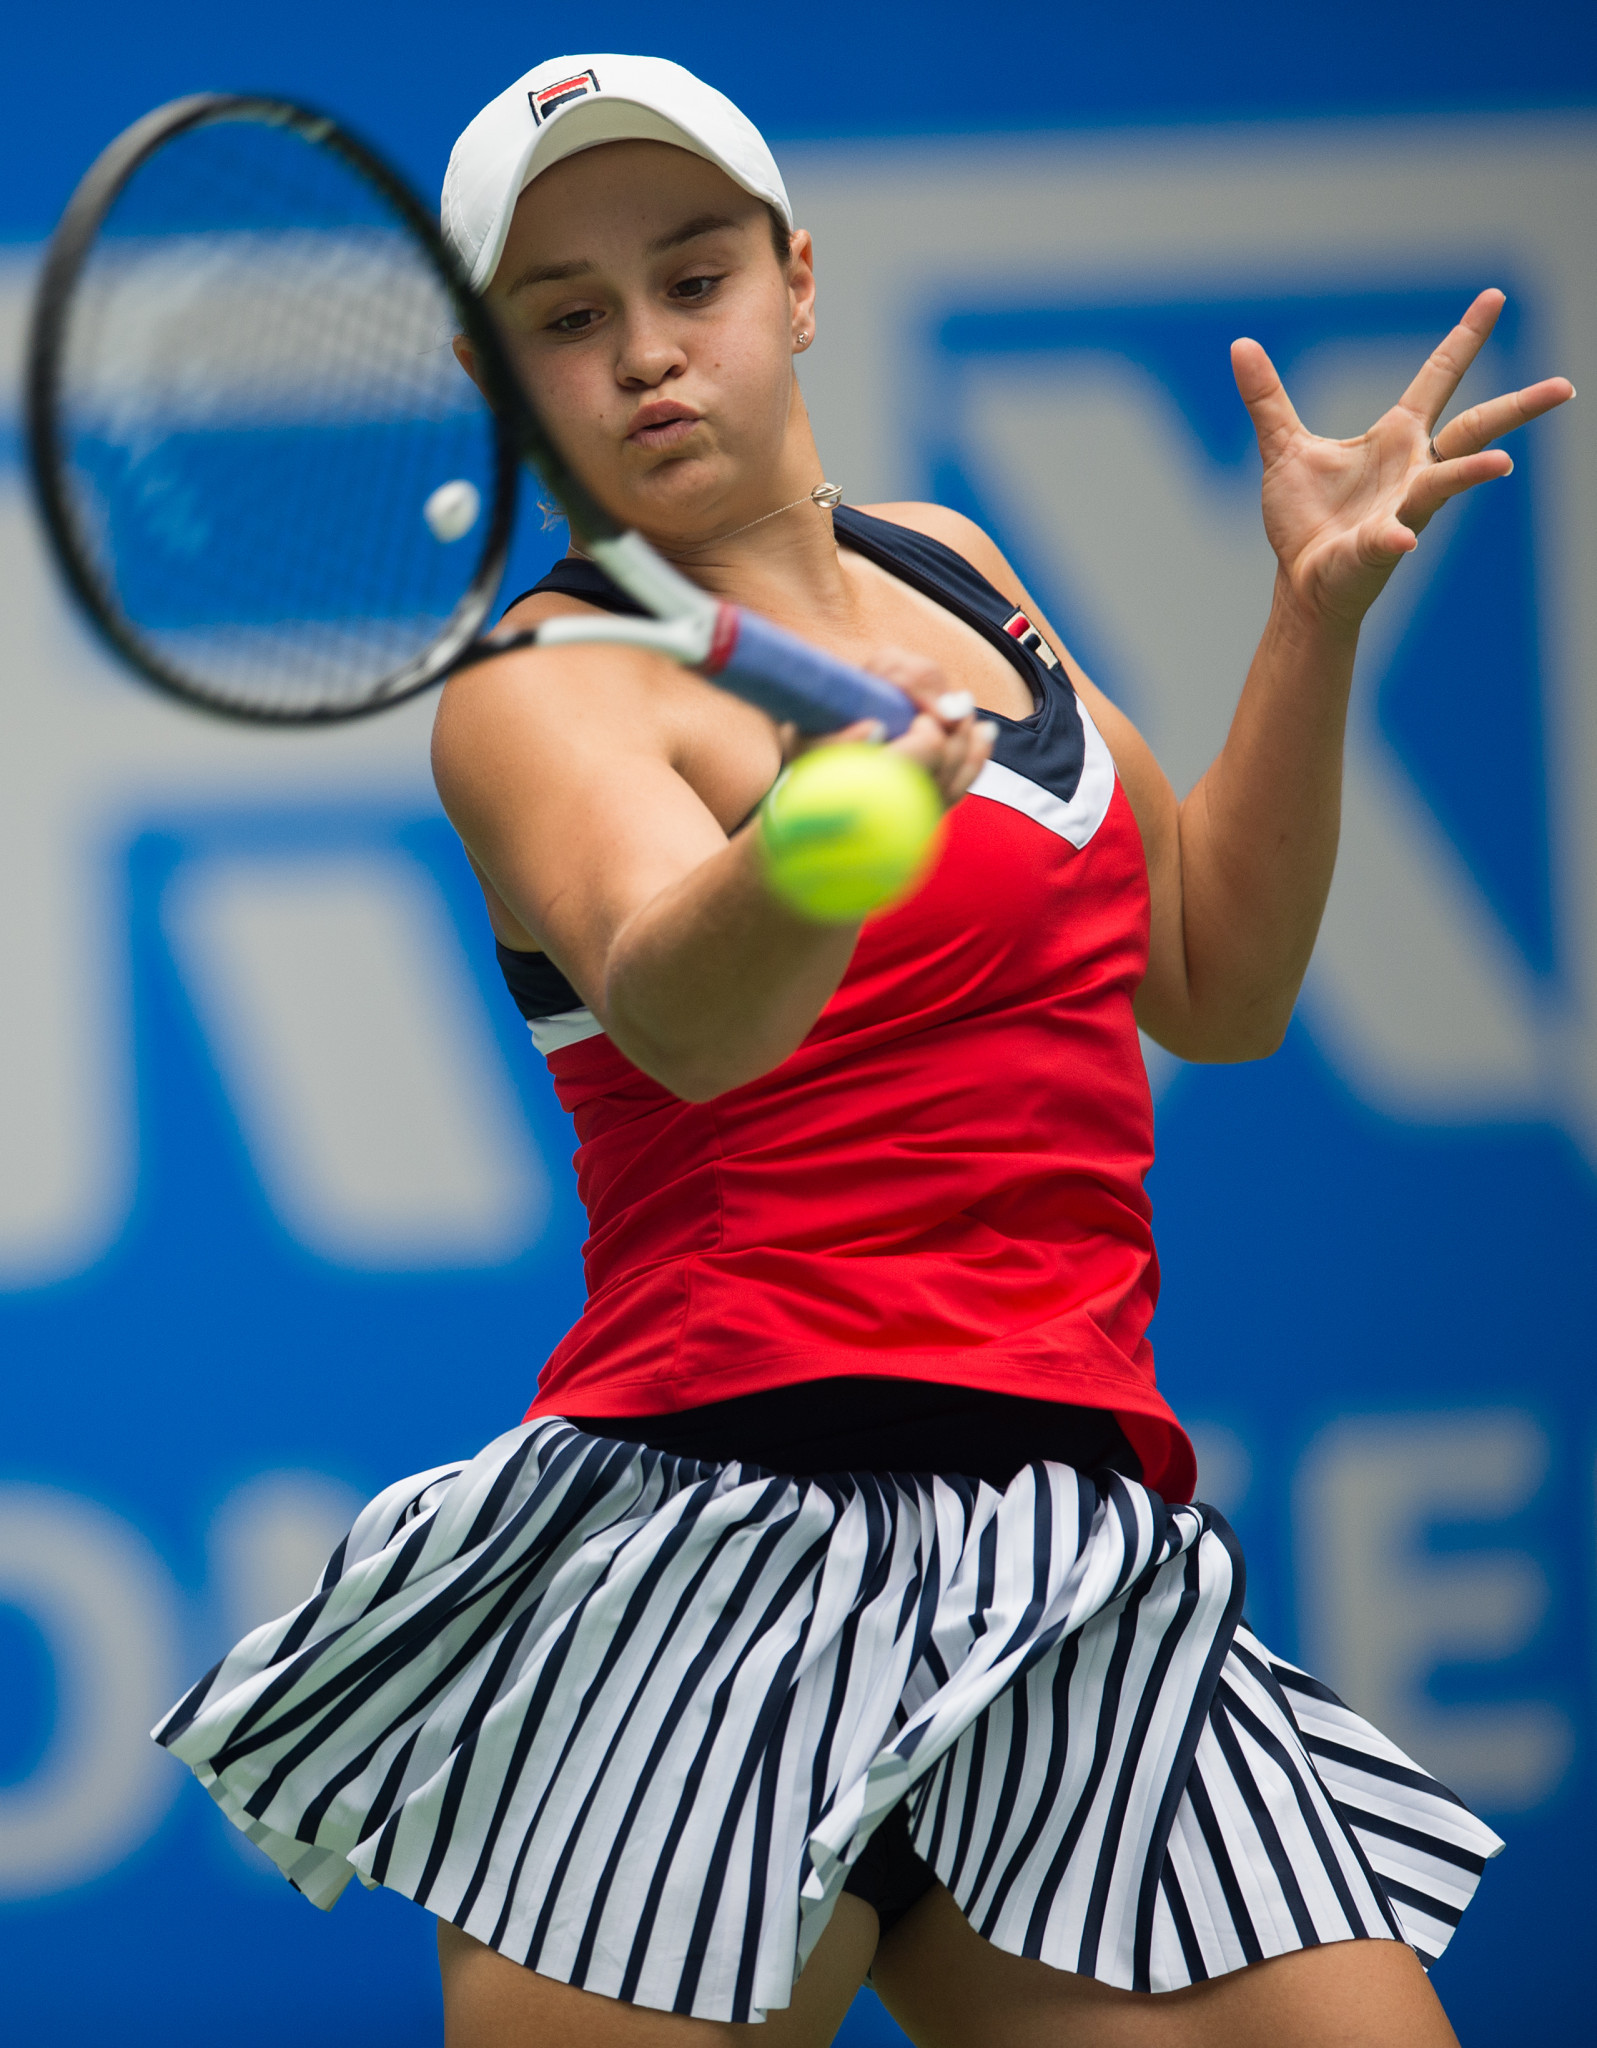 Australia's Ashleigh Barty, the only remaining seed in the WTA Wuhan Open, en-route to the semi-finals today ©Getty Images